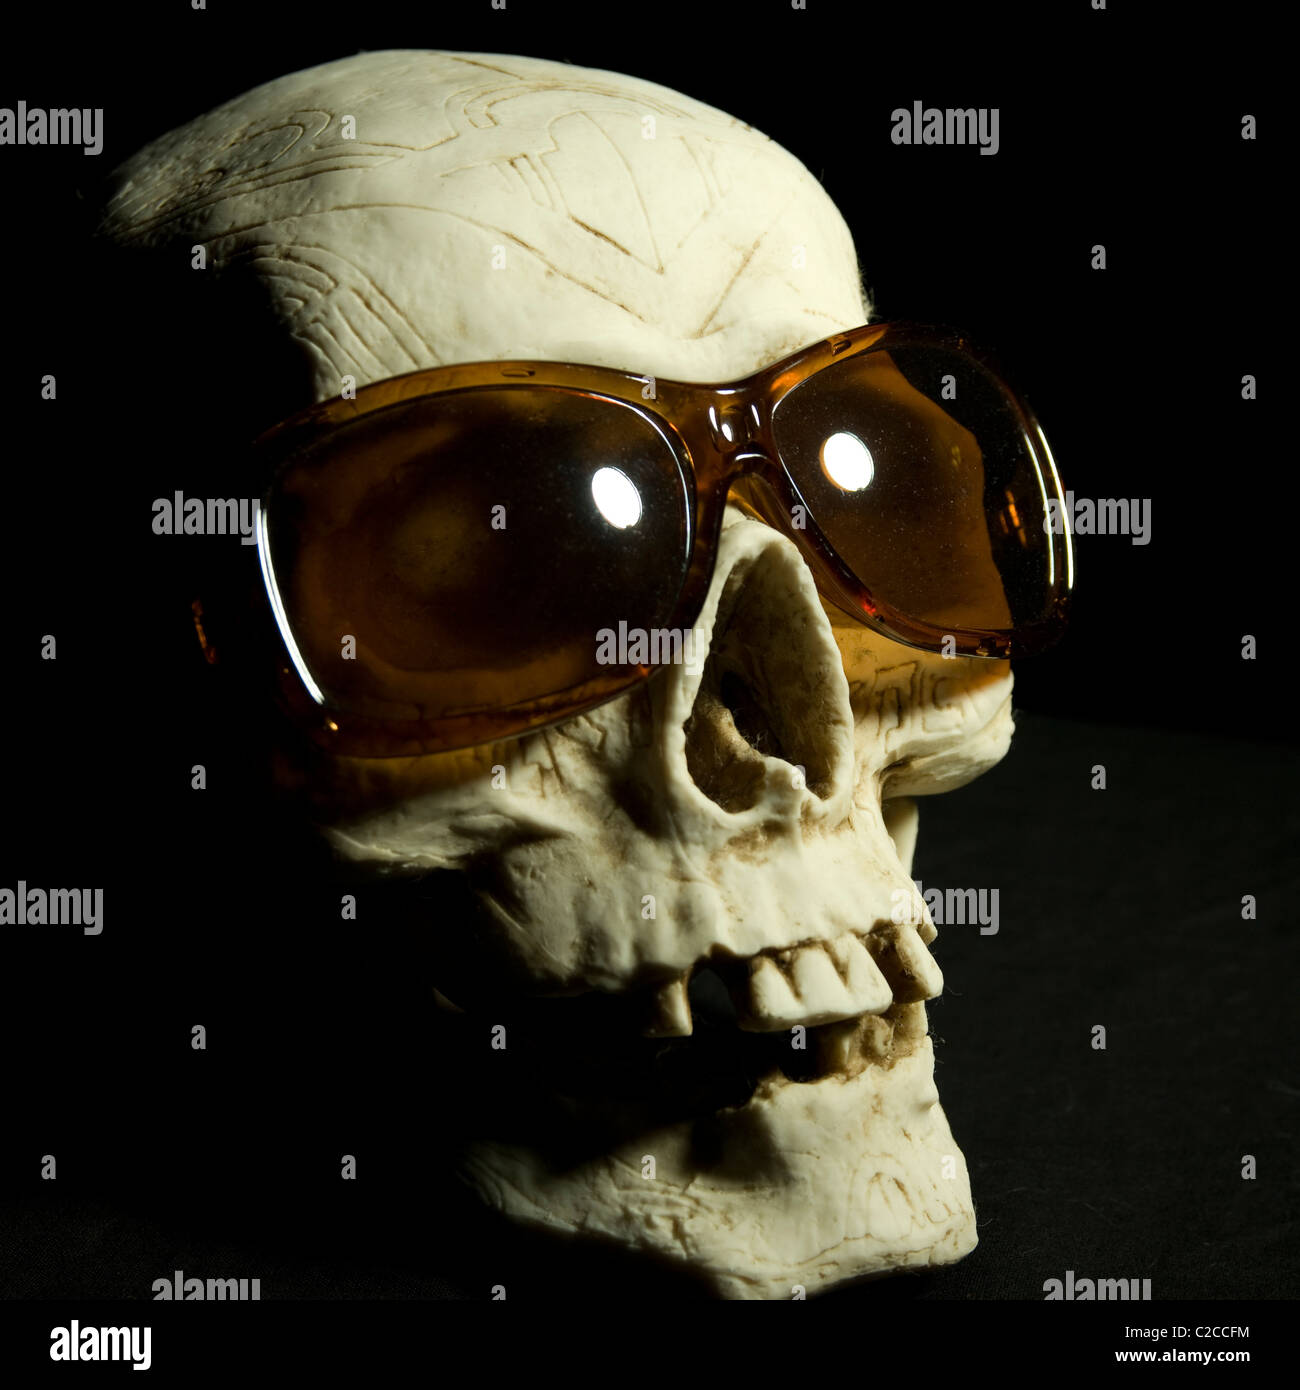 A ceramic skull wearing cheap sunglasses. - Stock Image